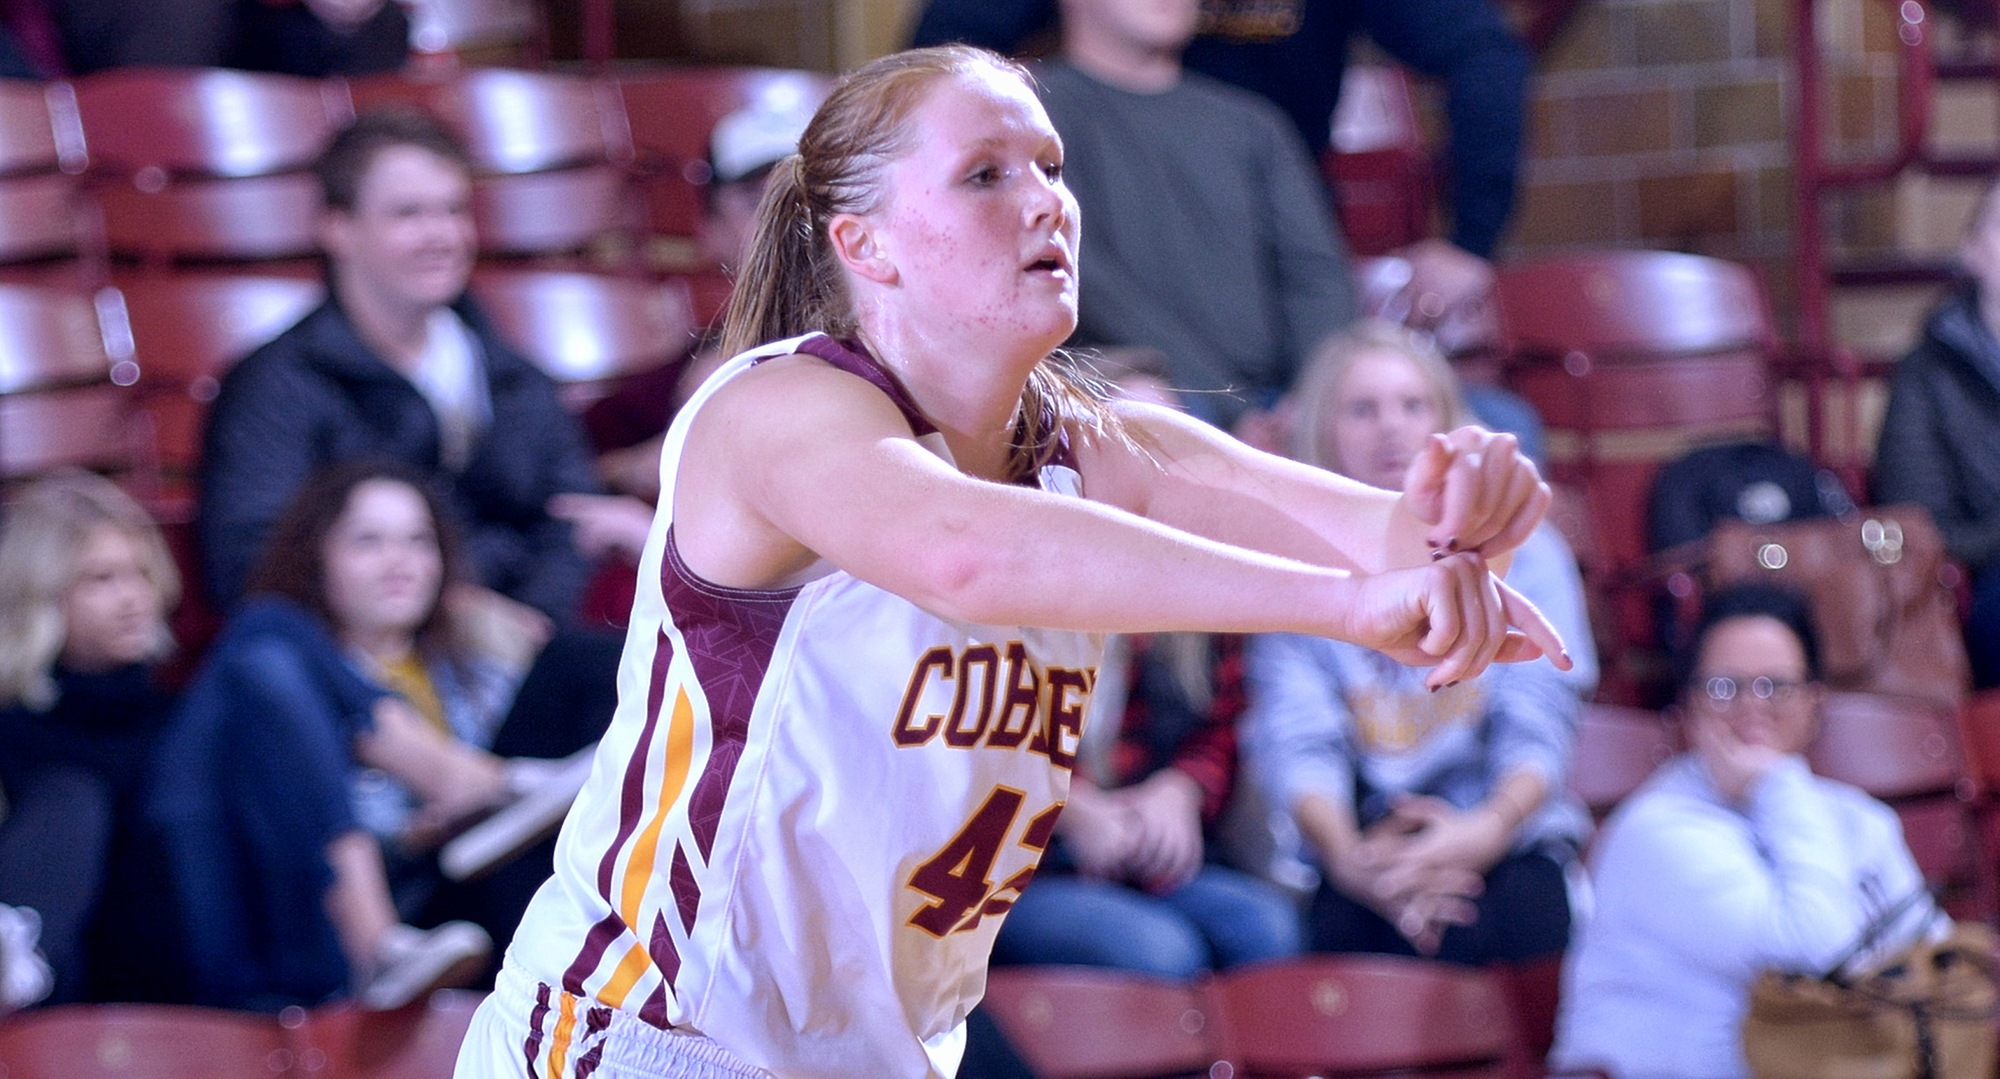 Senior Kirstin Simmons scored a career-high 17 points in the Cobbers' non-conference win at St. Benedict.